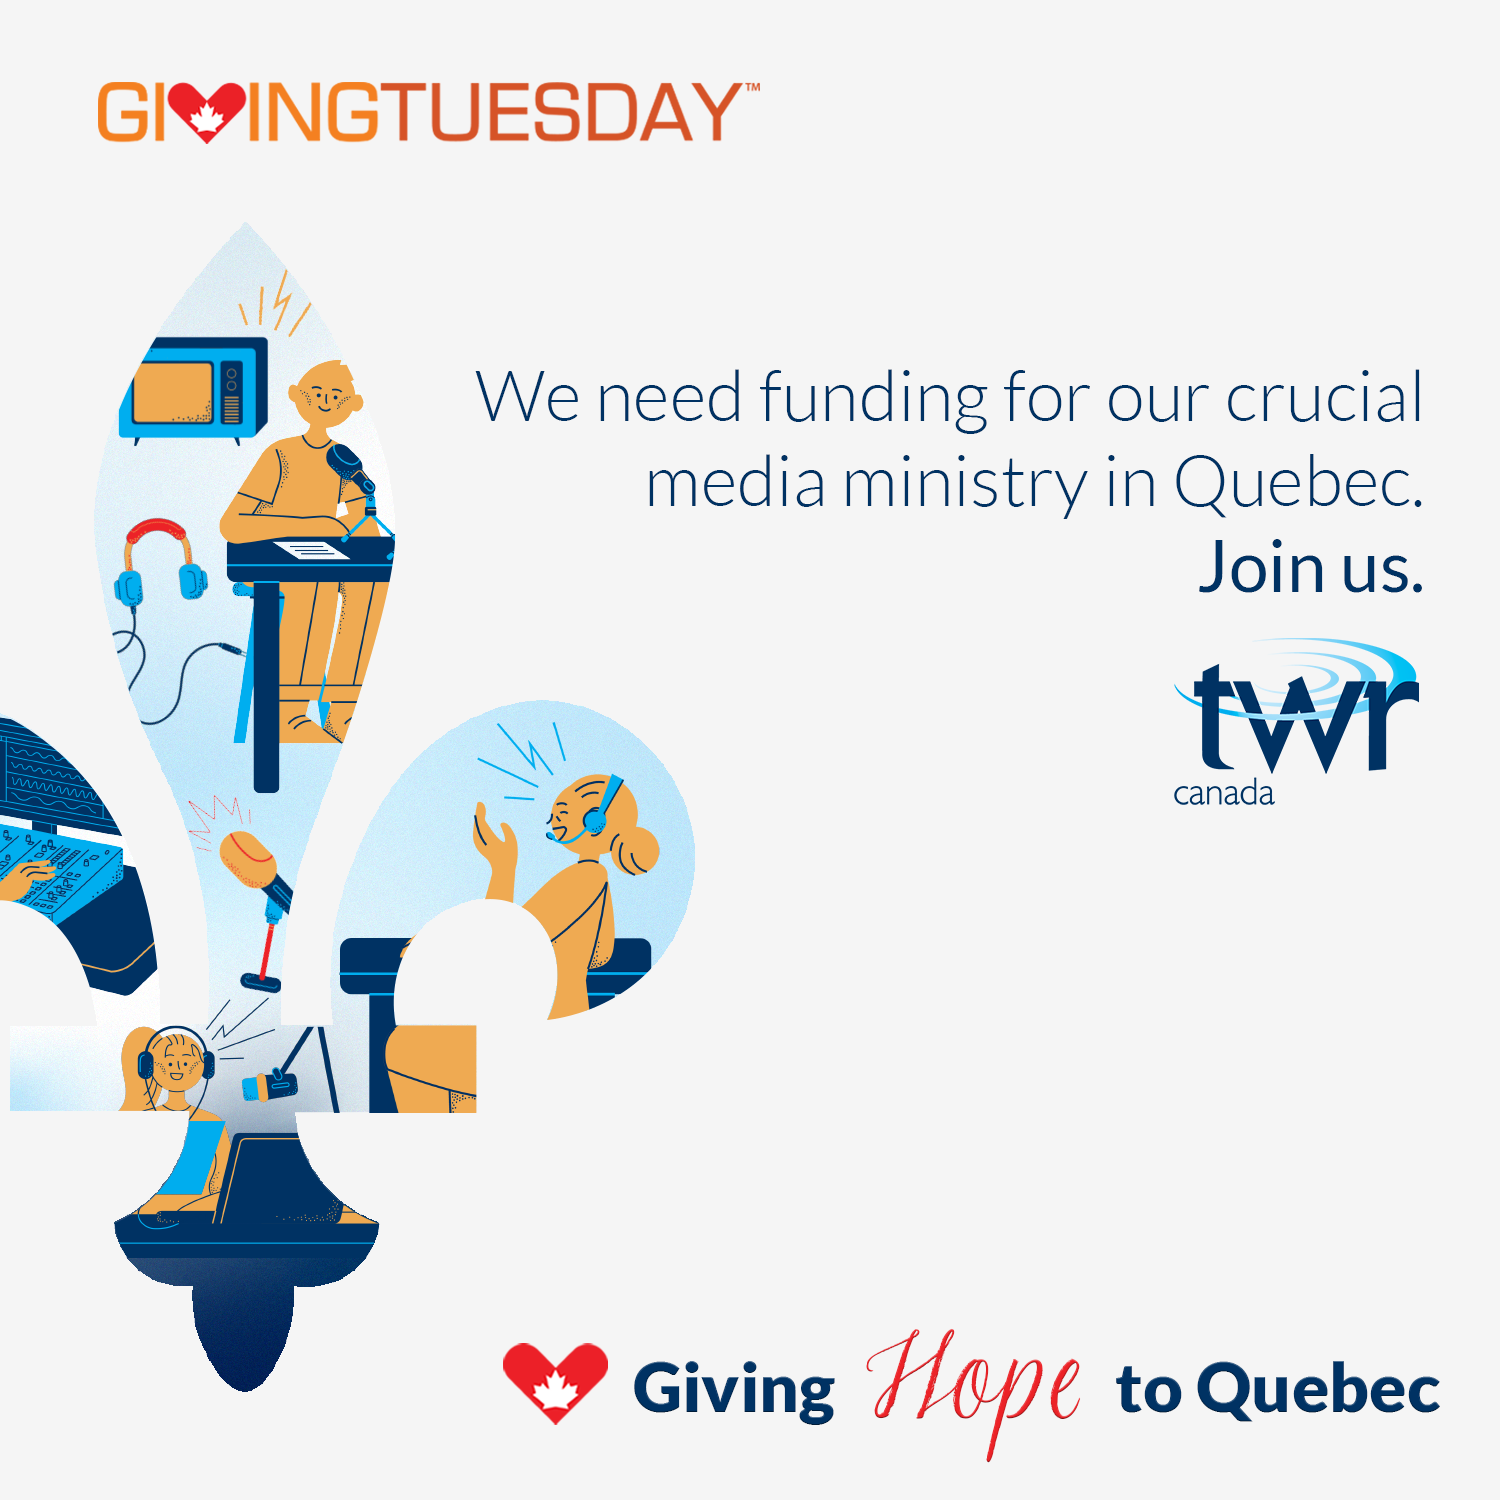 Giving Hope to Quebec